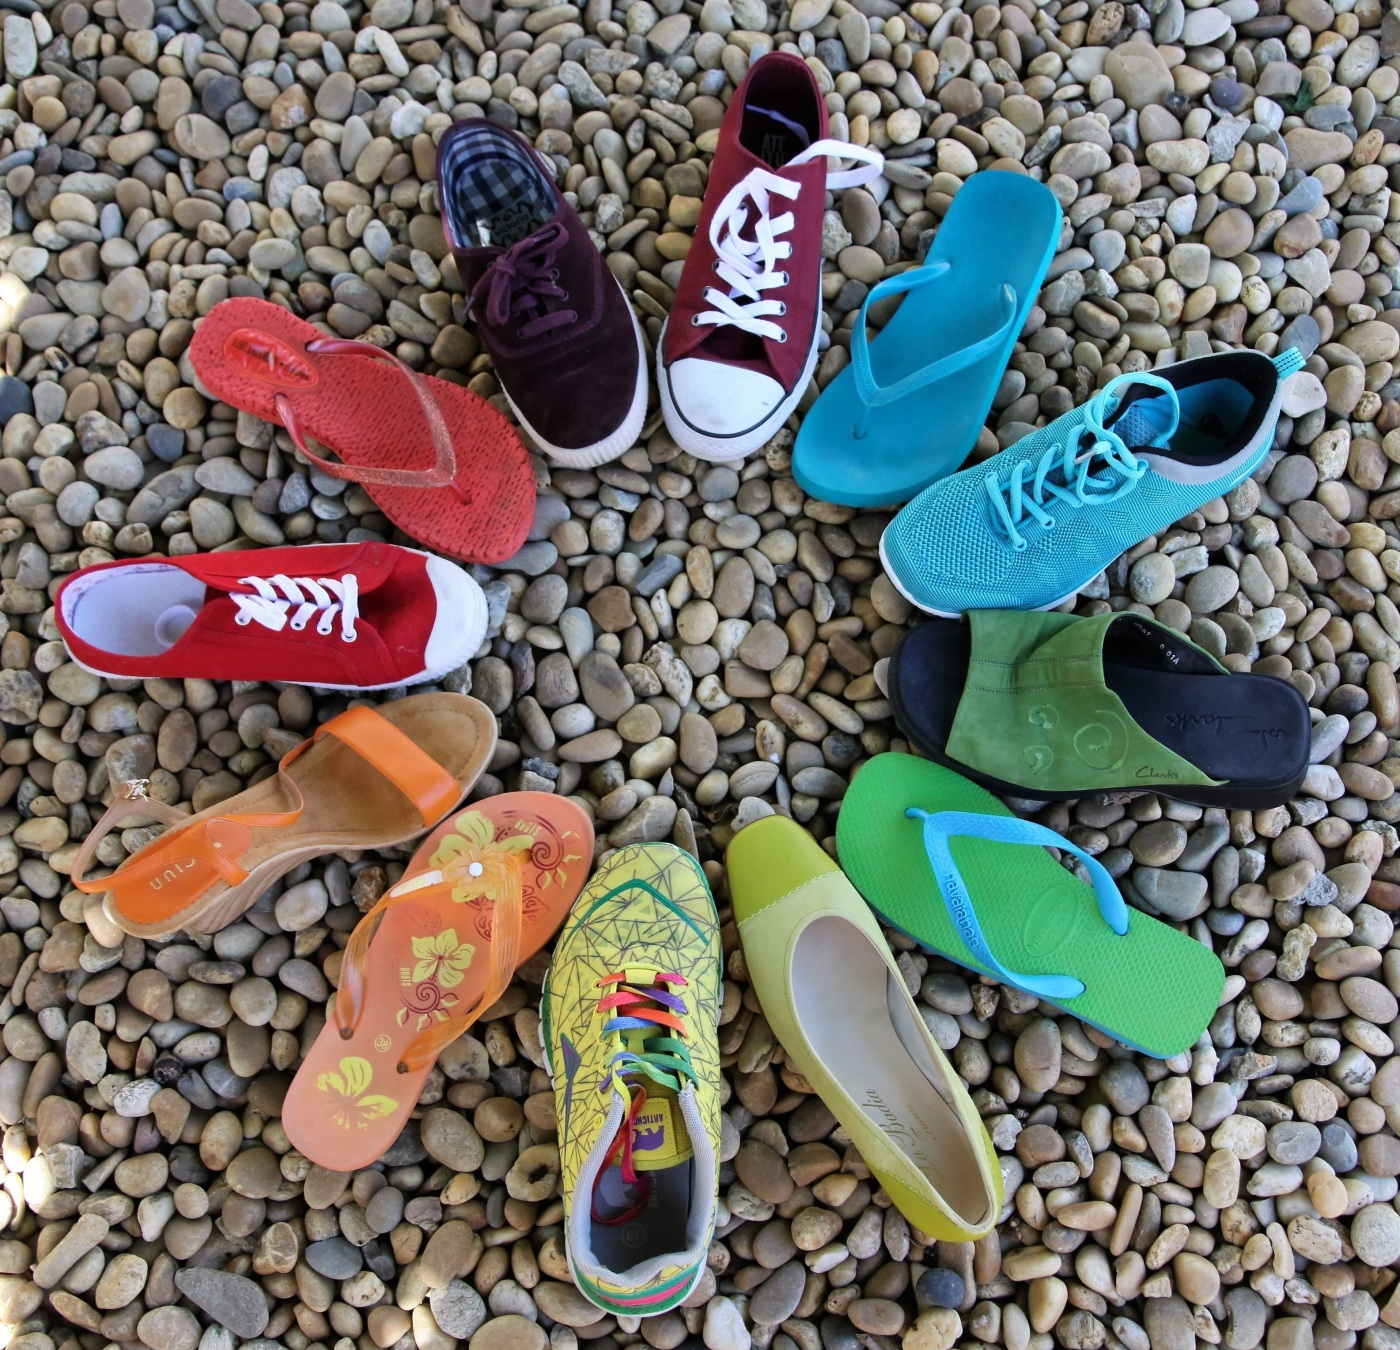 shoes in a circle. rainbow colors